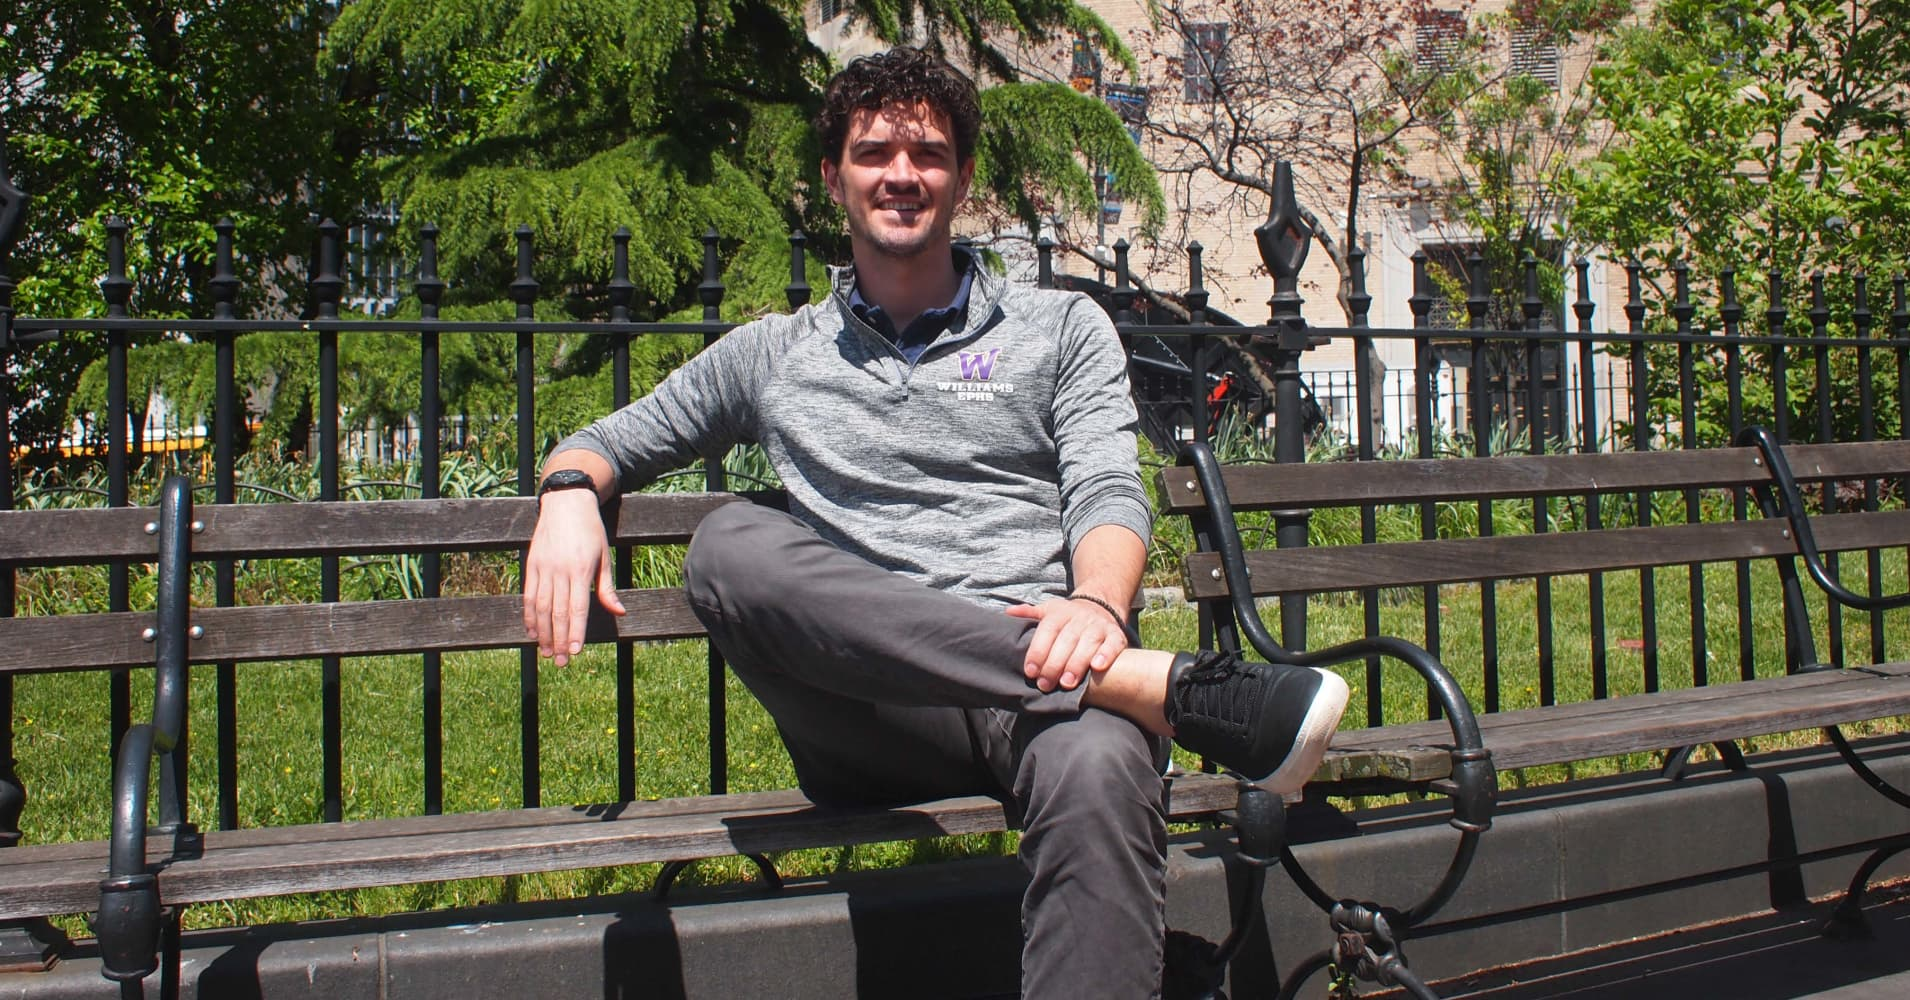 Ben Mackinnon, founder and CEO of New York City-based start-up Kard